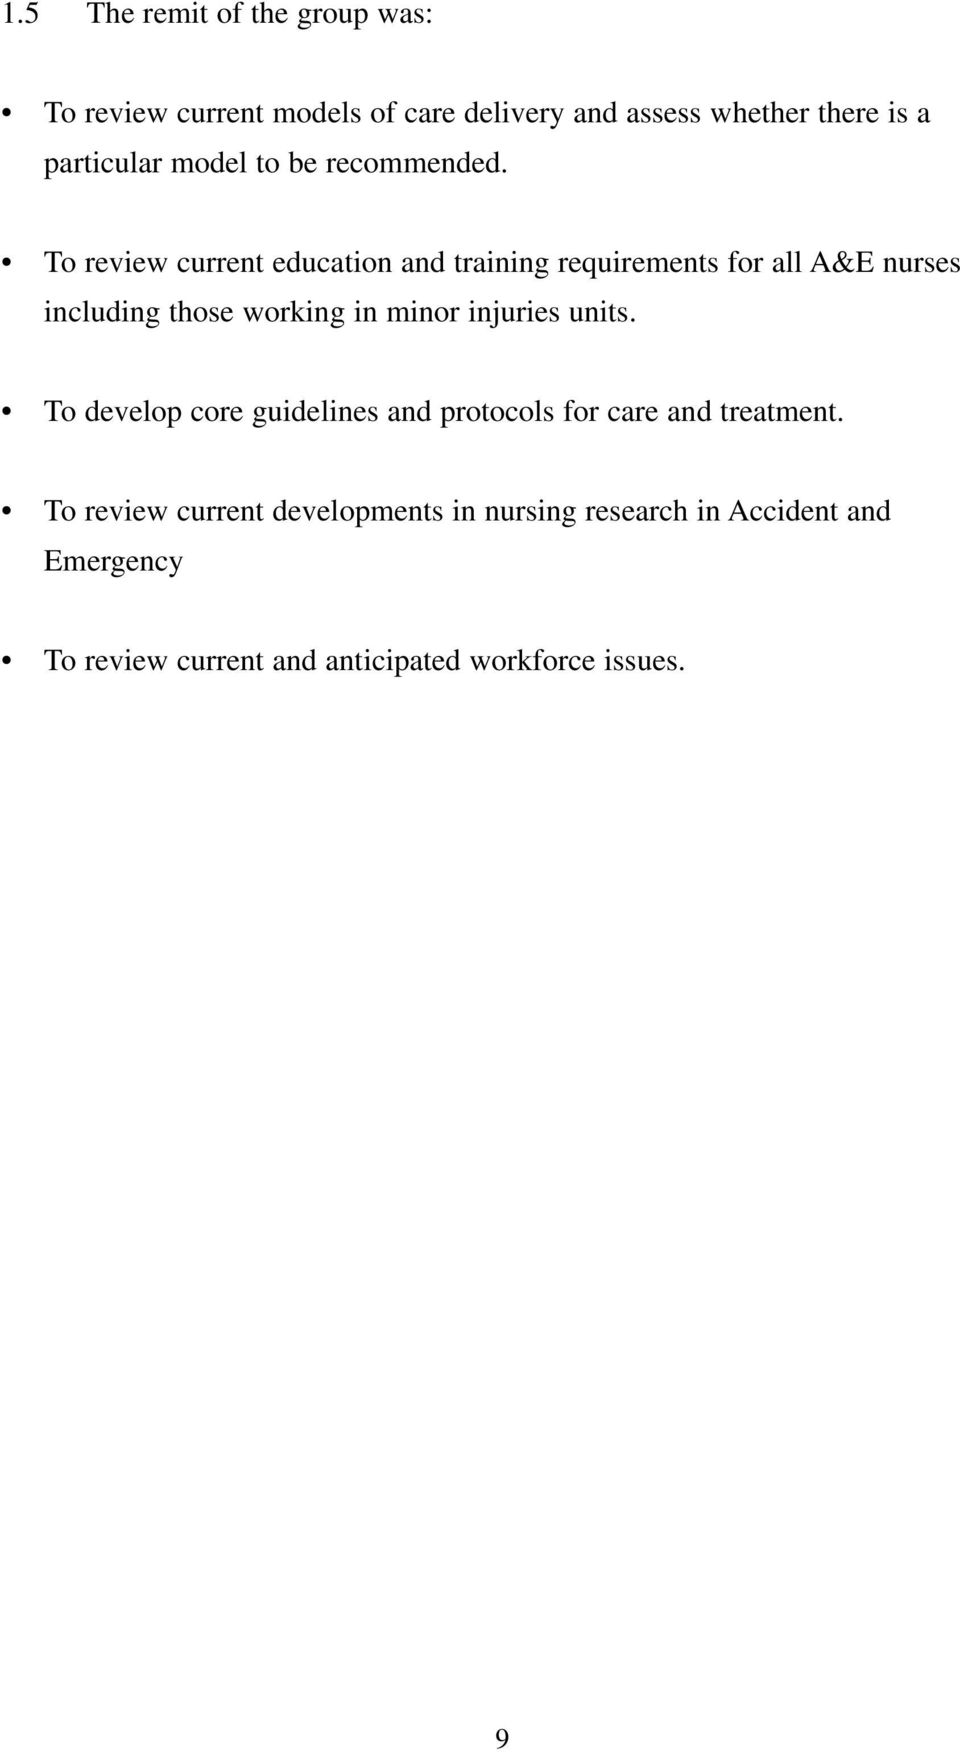 To review current education and training requirements for all A&E nurses including those working in minor injuries